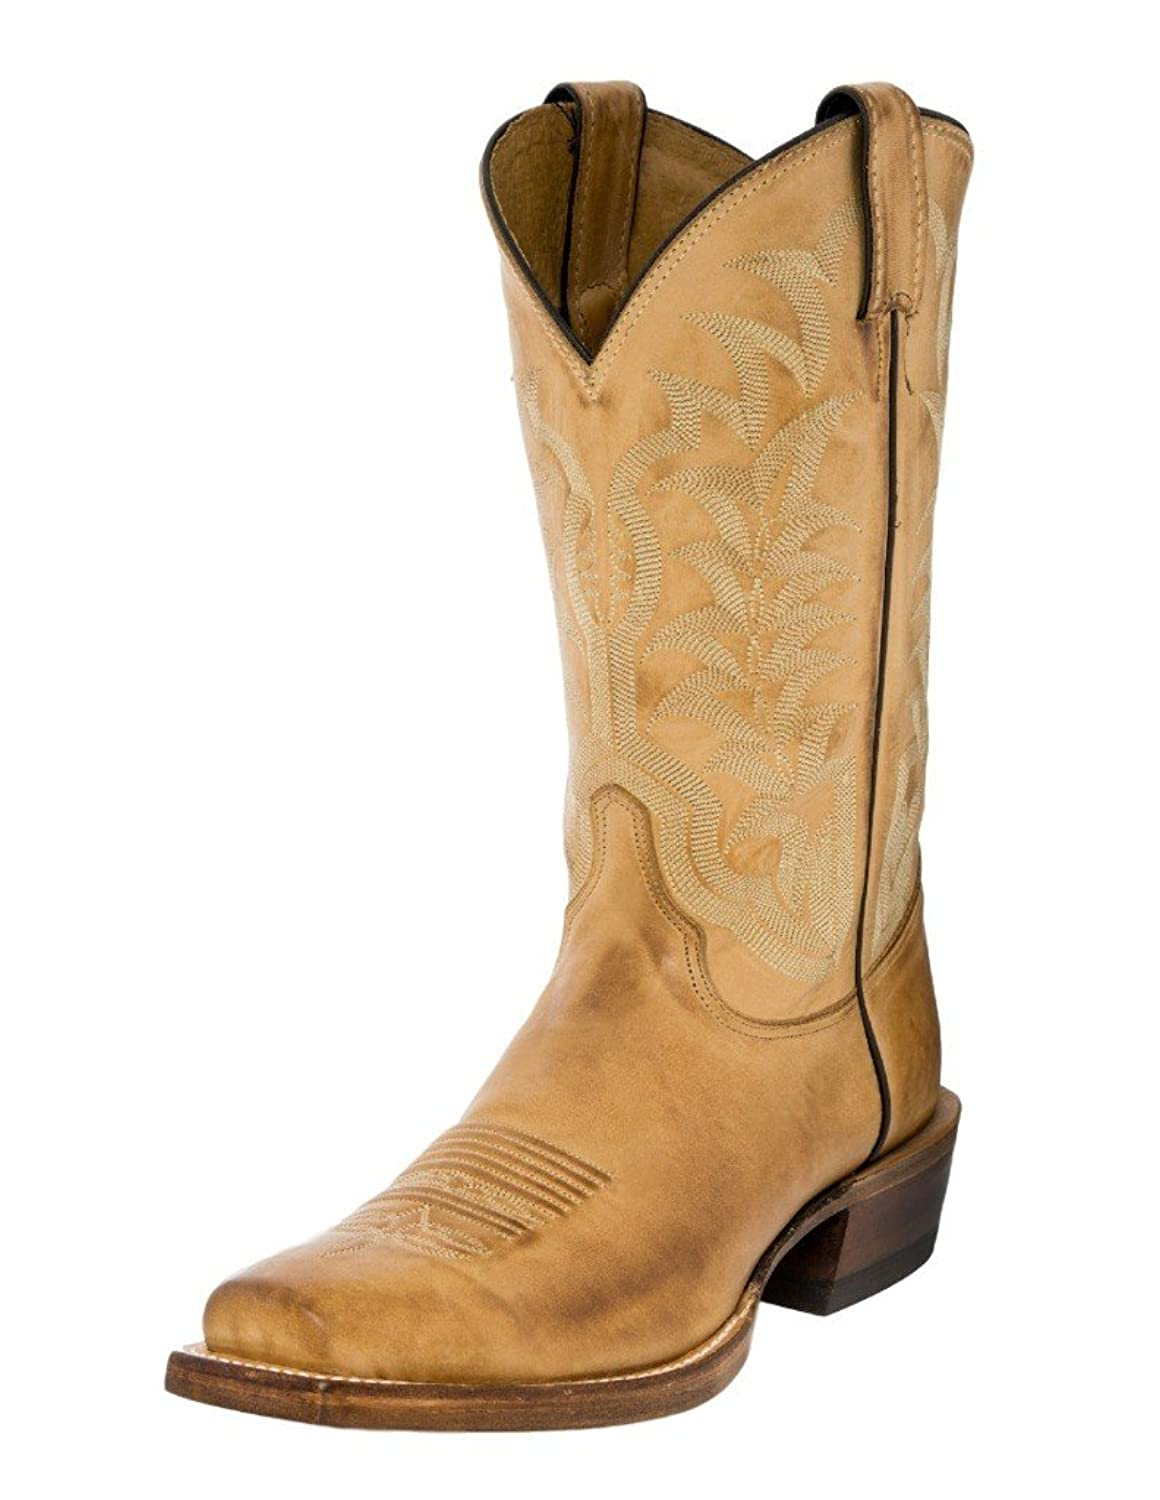 Justin Western Boots Mens Half Moon Square Toe 9 D Golden Tan 2712